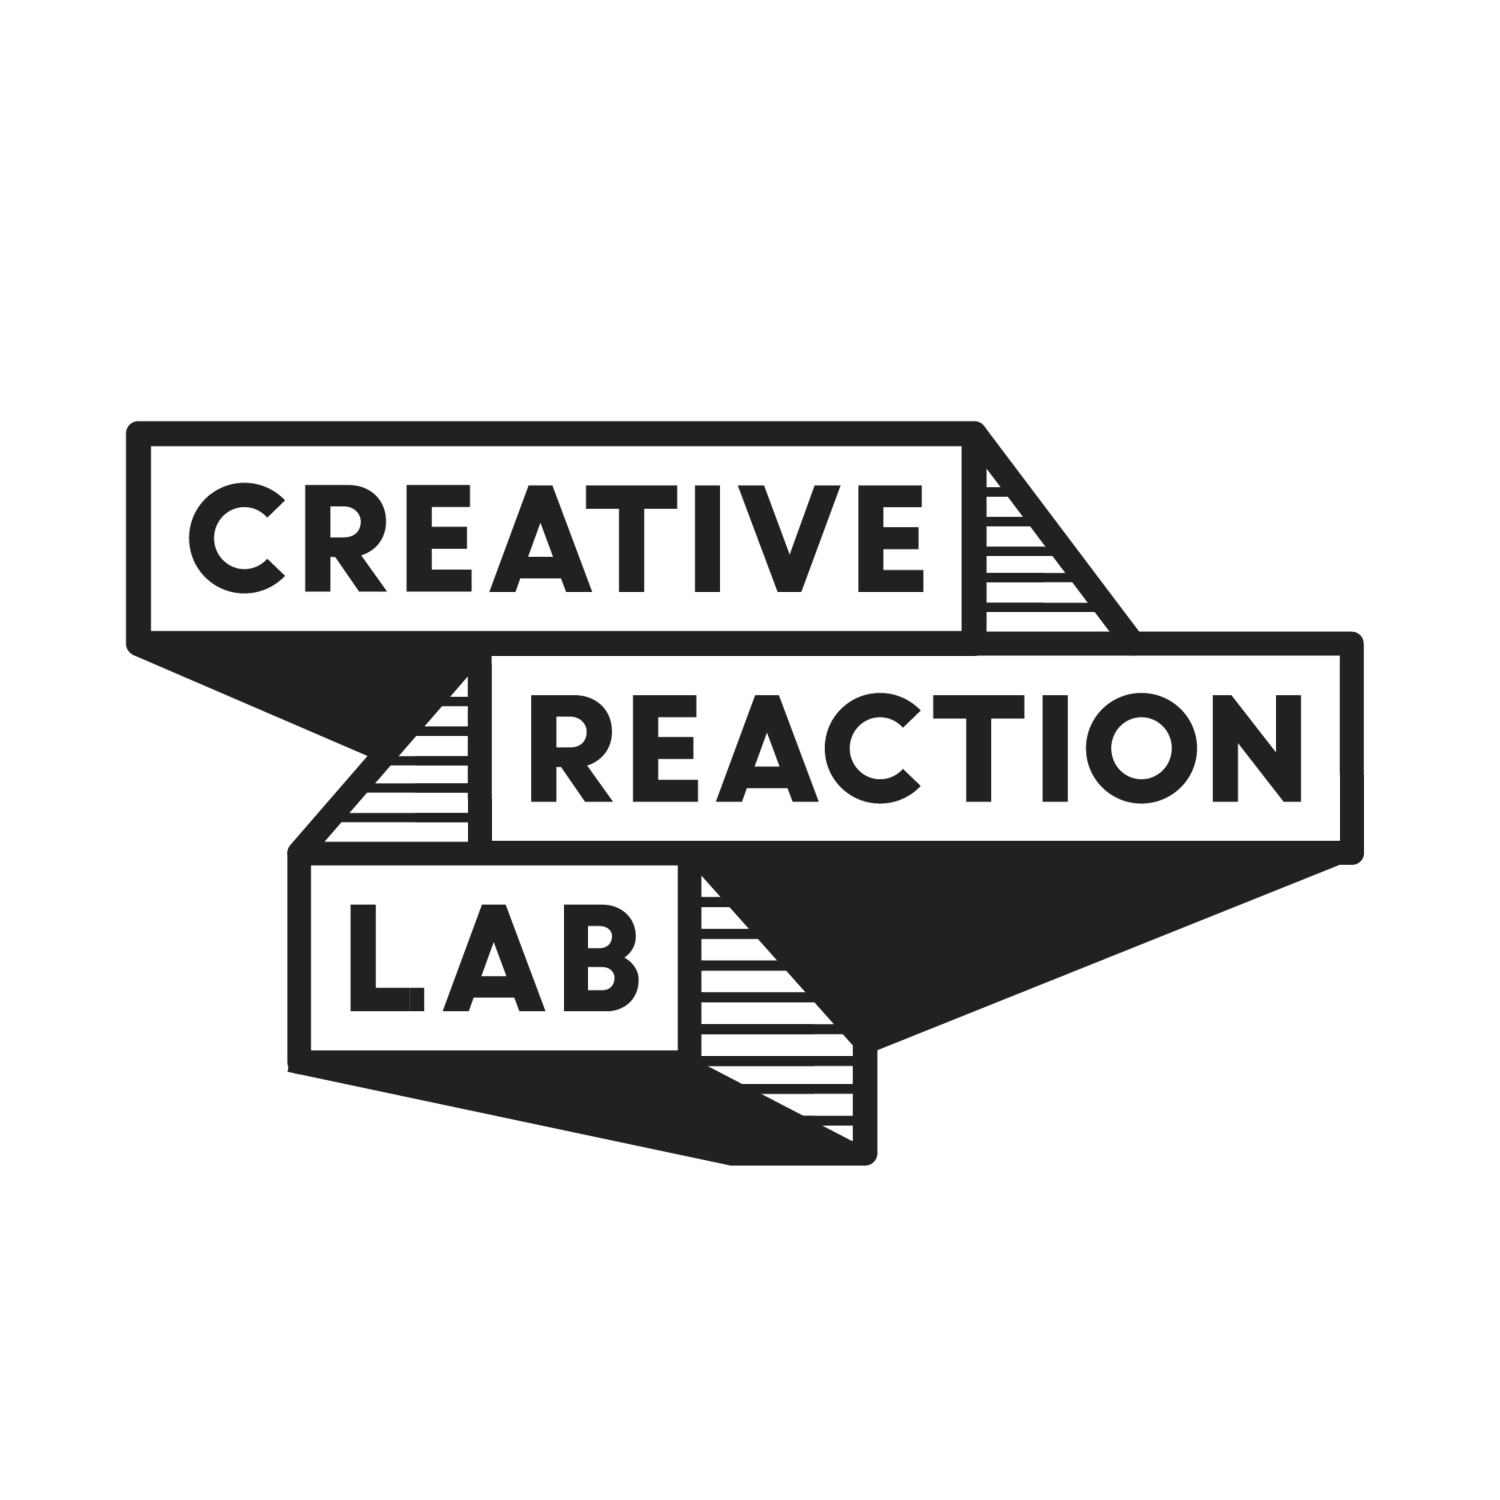 Creative Reaction Lab